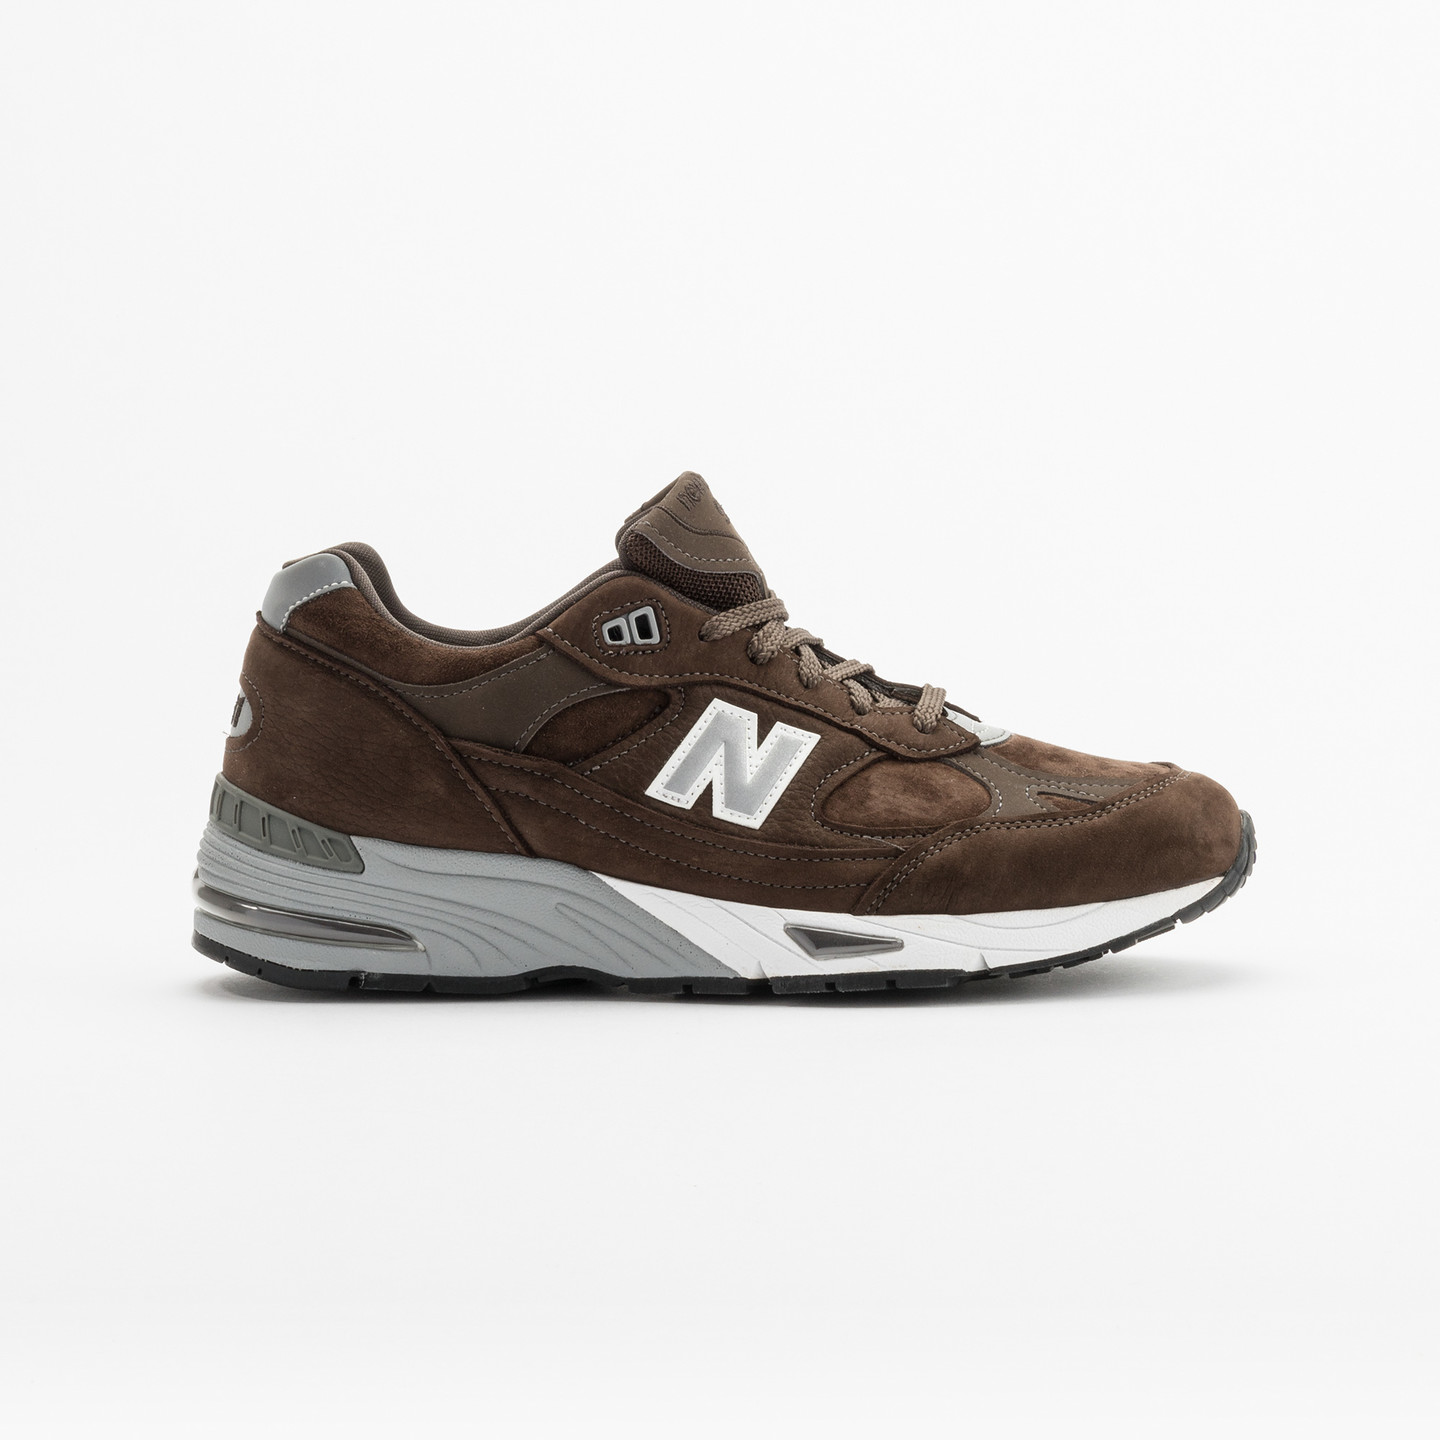 New Balance M991 PNB - Made in England Brown / Grey M991PNB